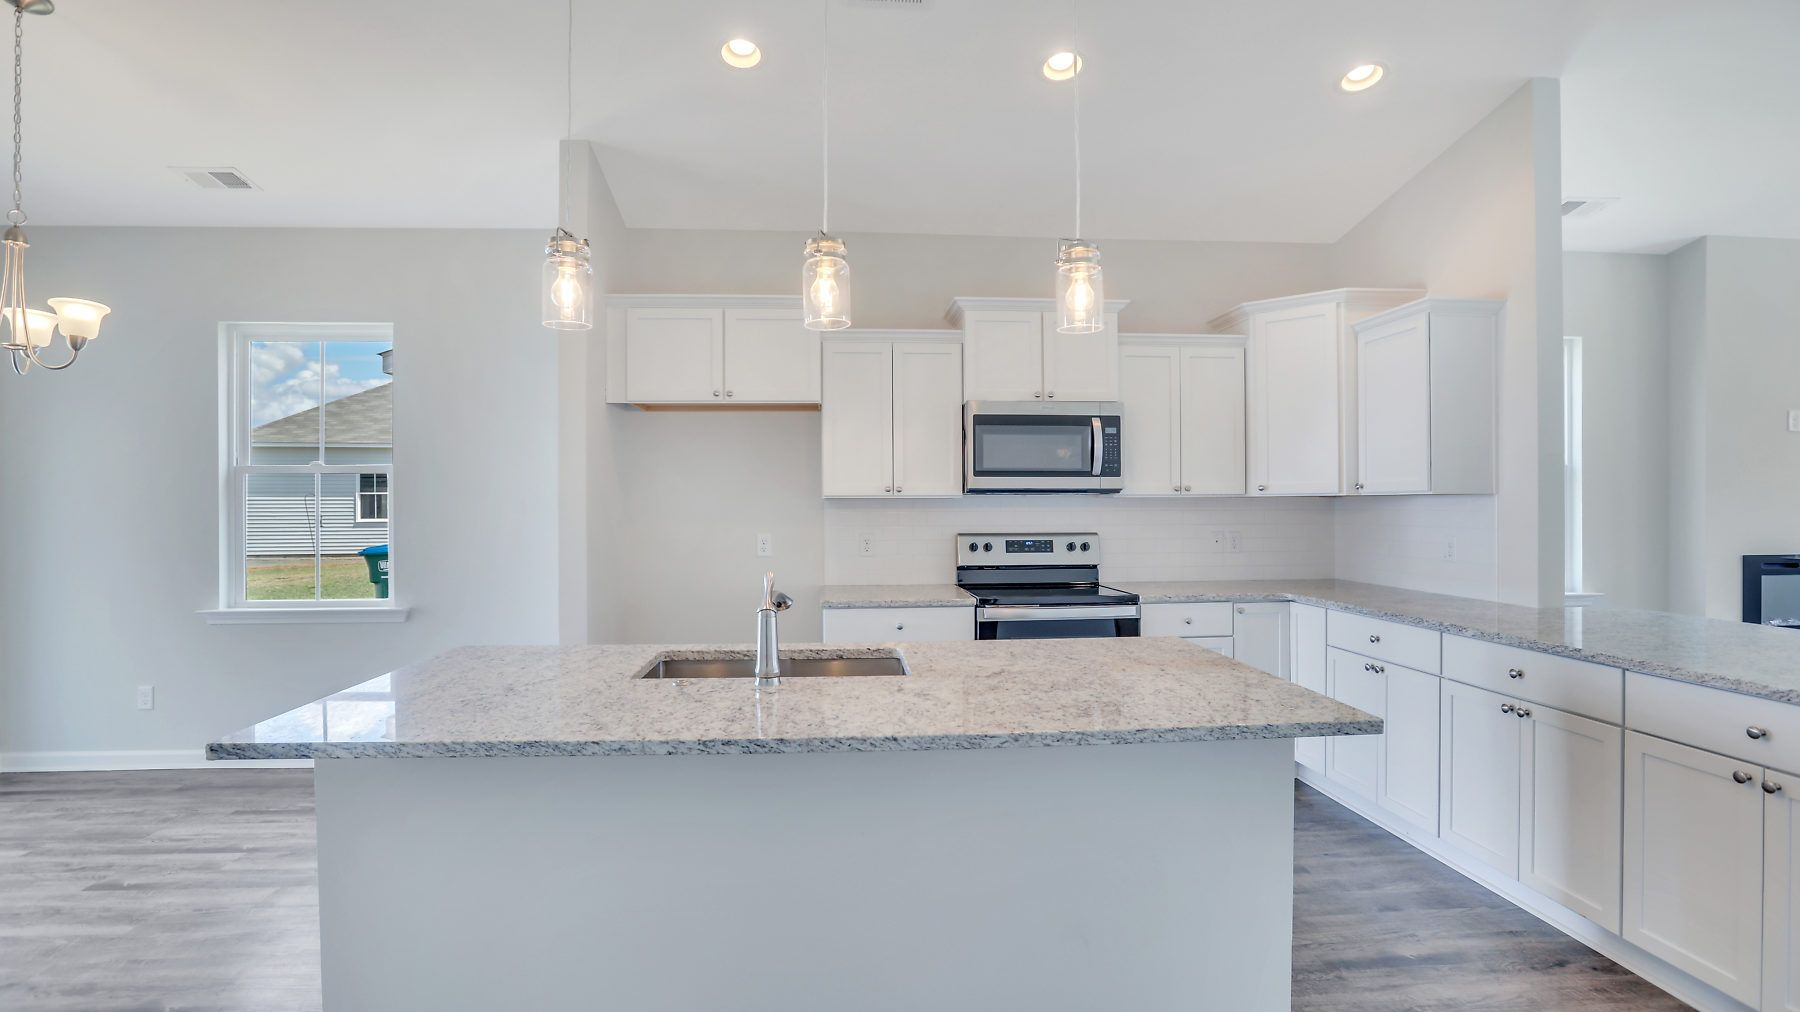 Kitchen featured in The Hampton II By Village Park Homes in Hilton Head, SC